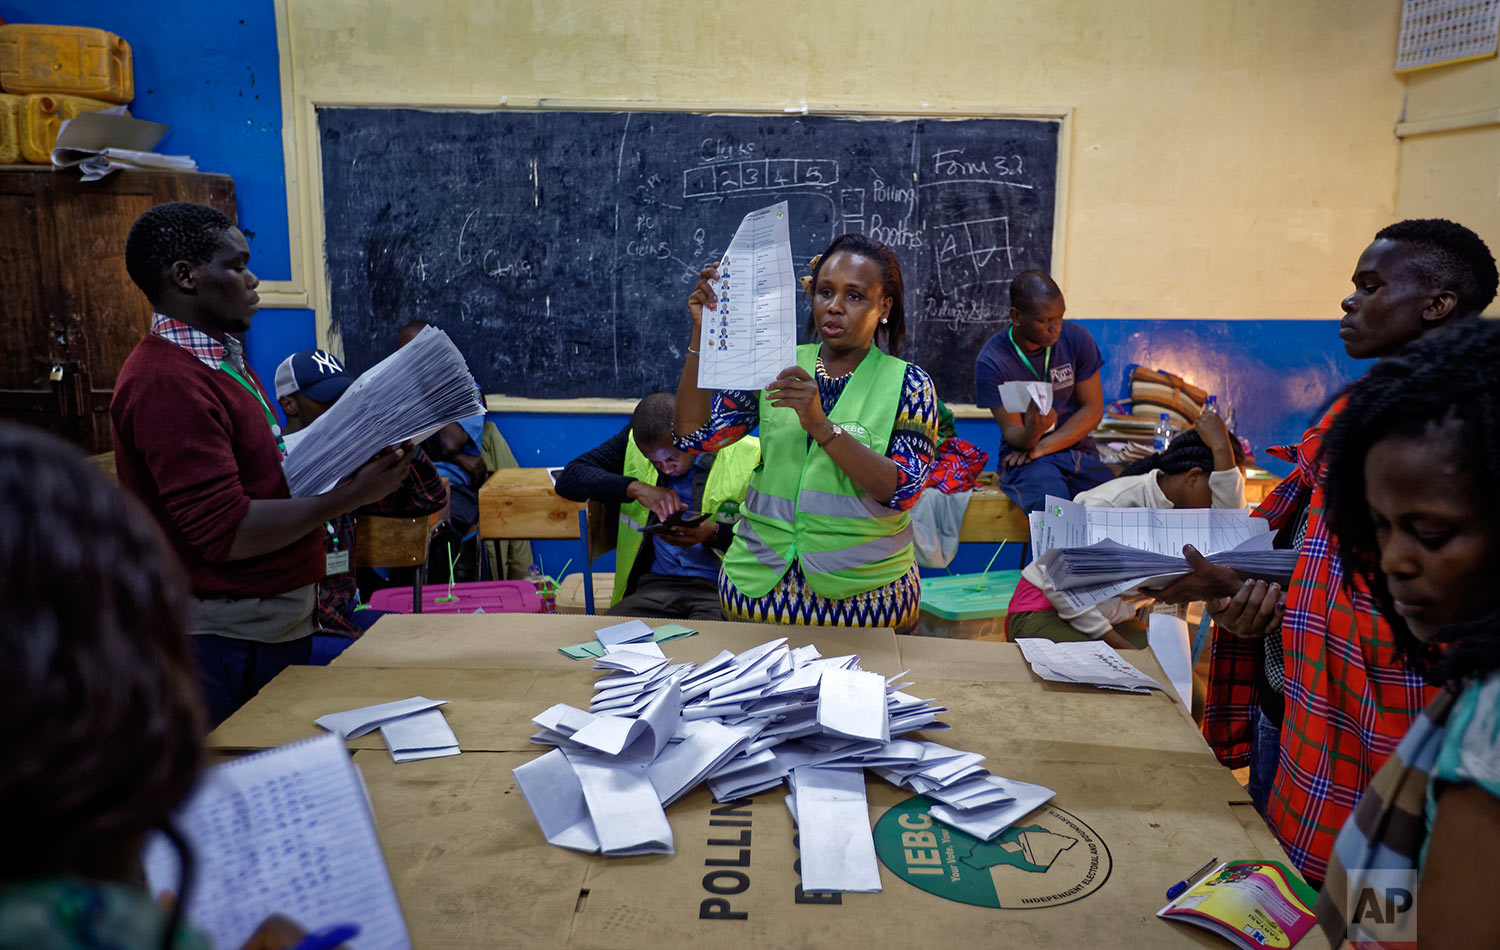 An electoral counting officer, center, counts votes while others hold the piles of ballots counted for each candidate, at a polling station in Nairobi, Kenya, Tuesday, Aug. 8, 2017. Kenyans are going to the polls to vote in a general election after a tightly-fought presidential race between incumbent President Uhuru Kenyatta and main opposition leader Raila Odinga. (AP Photo/Ben Curtis)